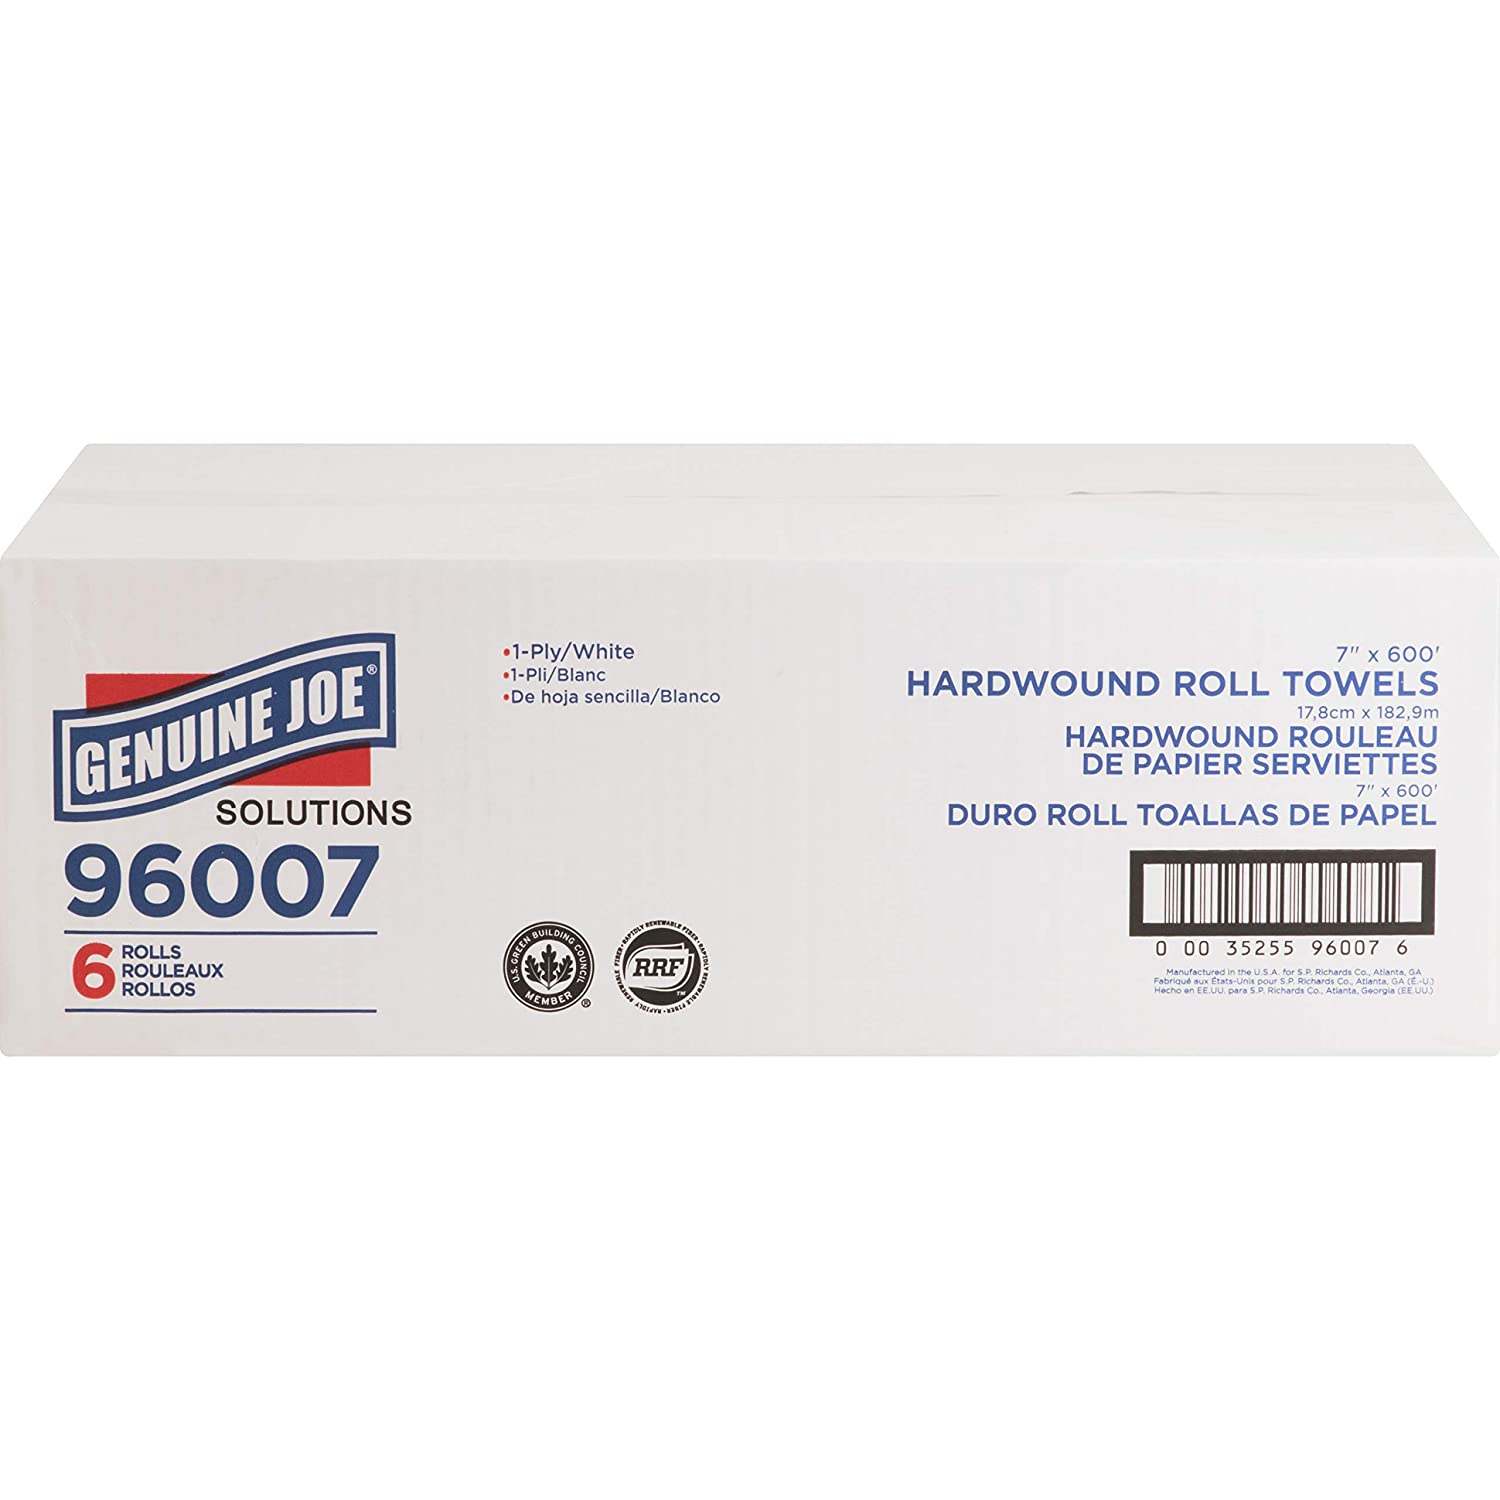 Genuine Joe 96007 Solutions 1-ply Hardwound Towels (Pack of 6): Amazon.com: Industrial & Scientific